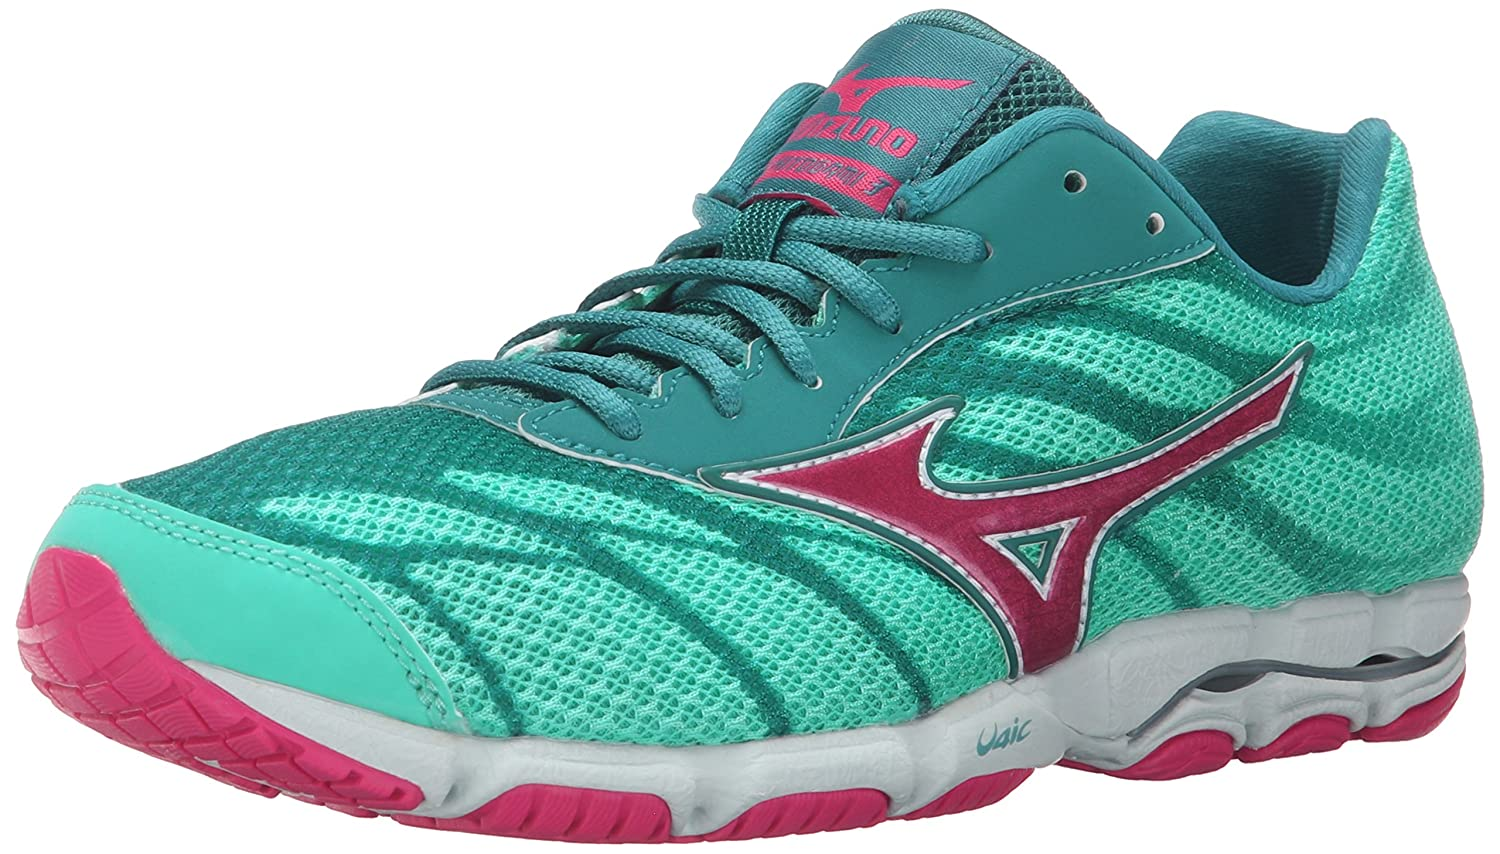 Mizuno Women's Wave Hitogami 3 Running Shoe B010TVNQ1E 7.5 B(M) US|Malibu Blue/Fuchsia Purple